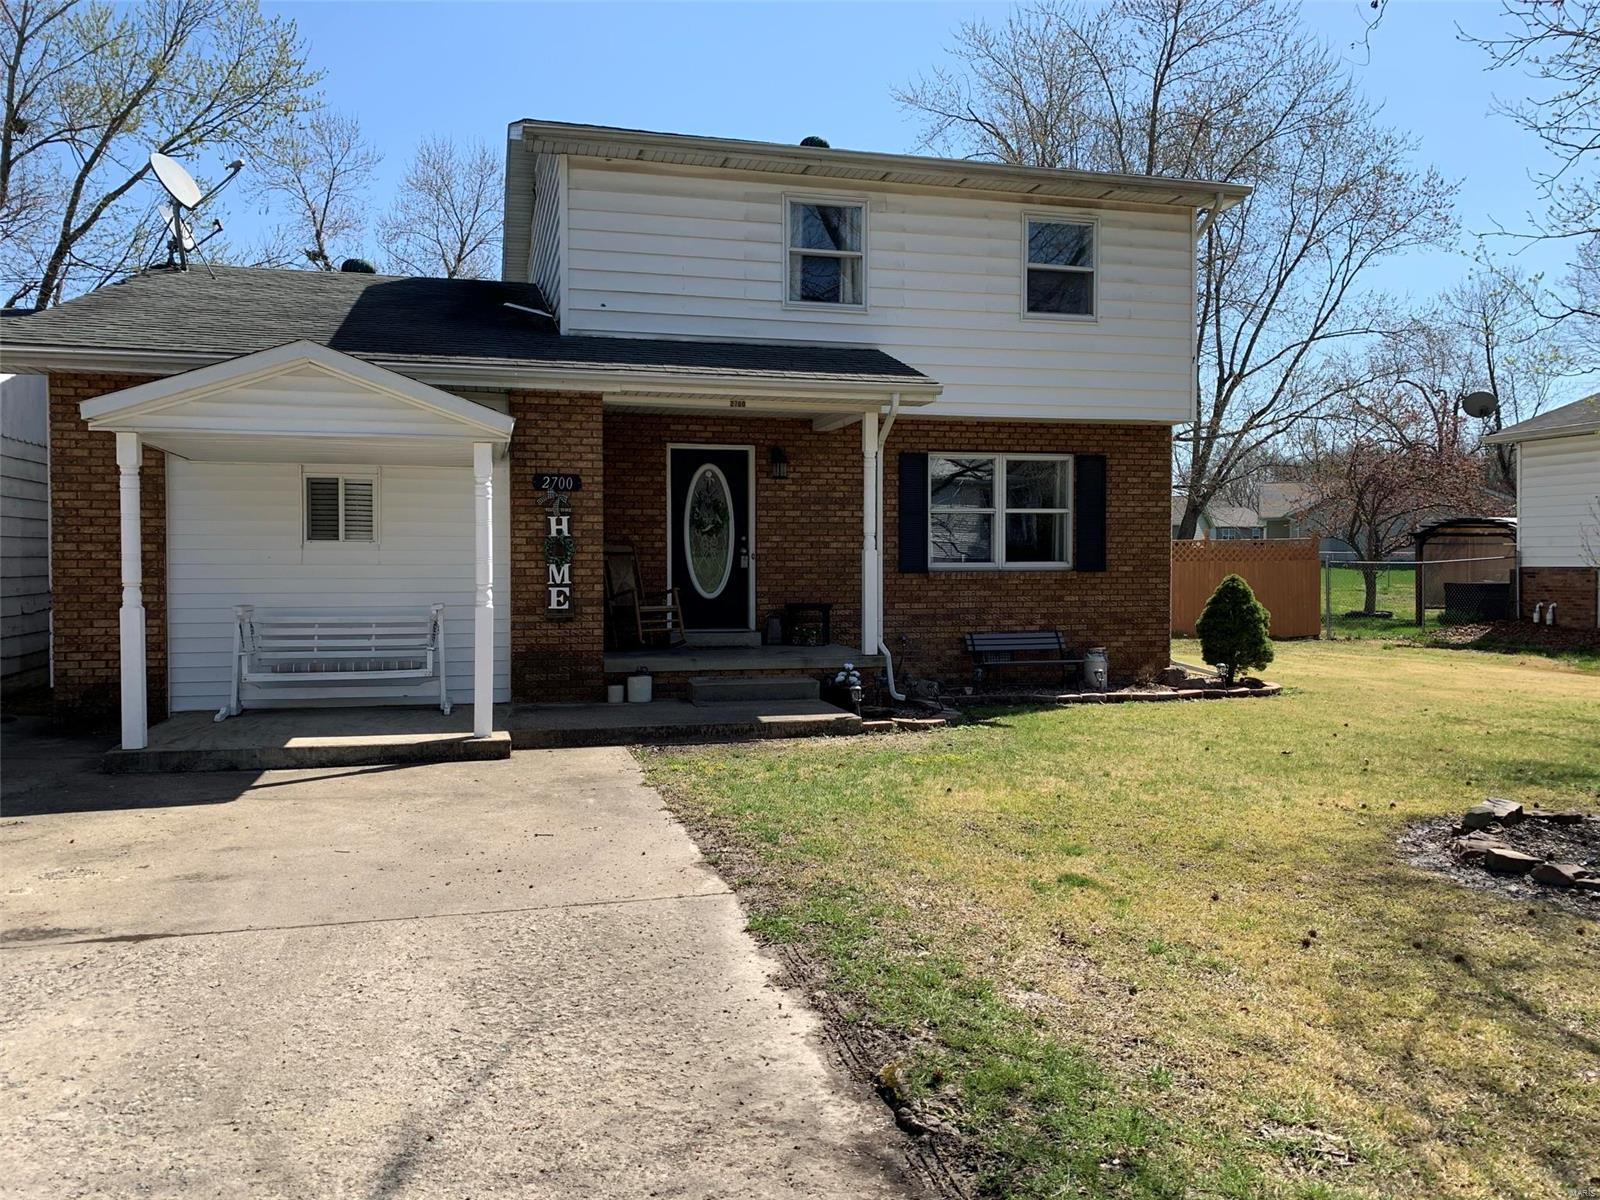 2700 N Brownsville Road Property Photo - Mount Vernon, IL real estate listing